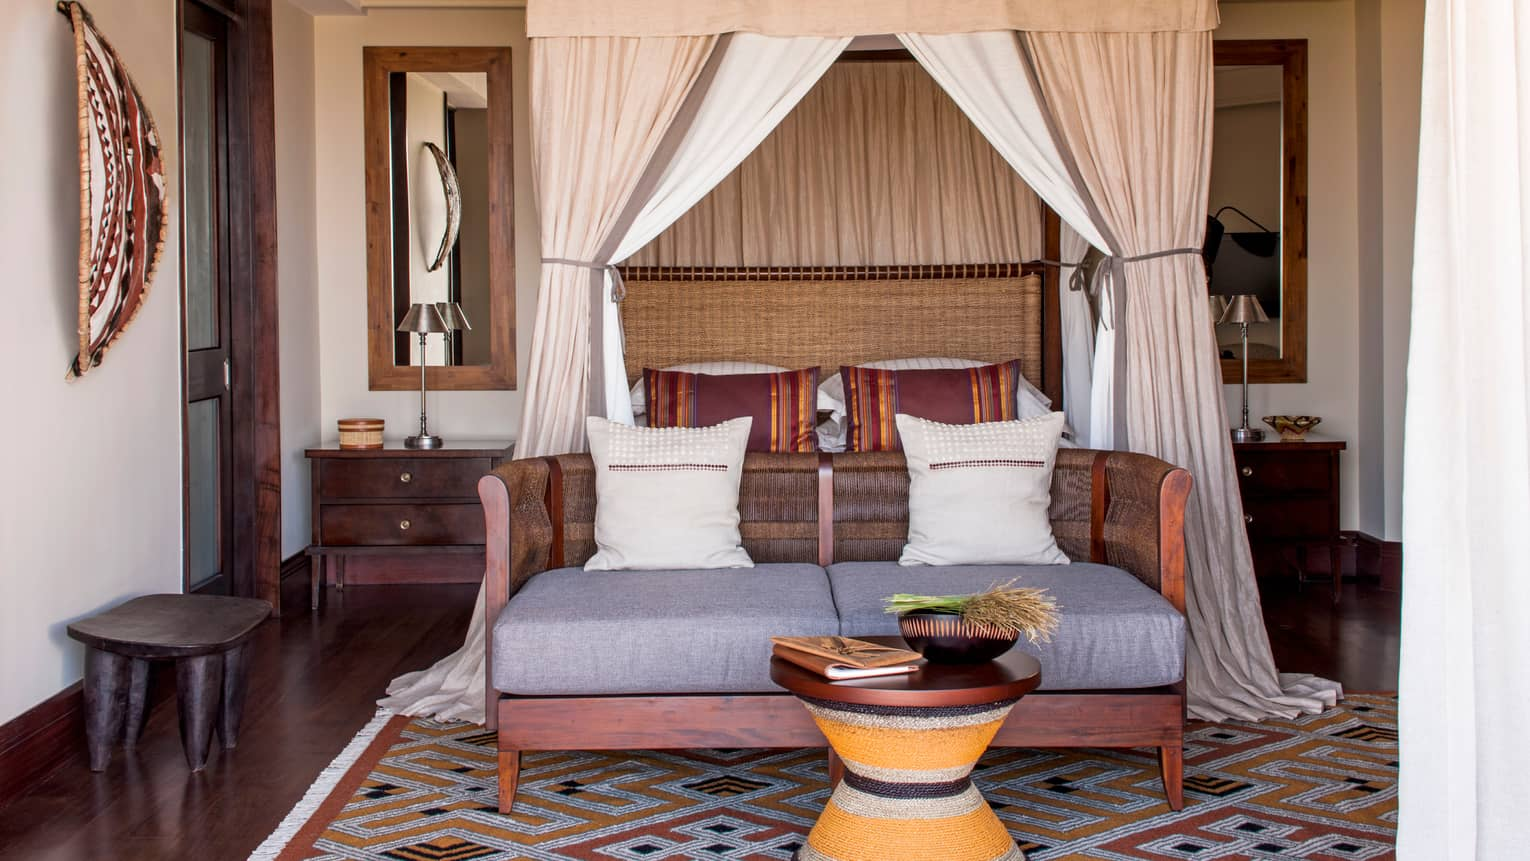 Savannah Room poster bed and canopy behind wicker loveseat, small table